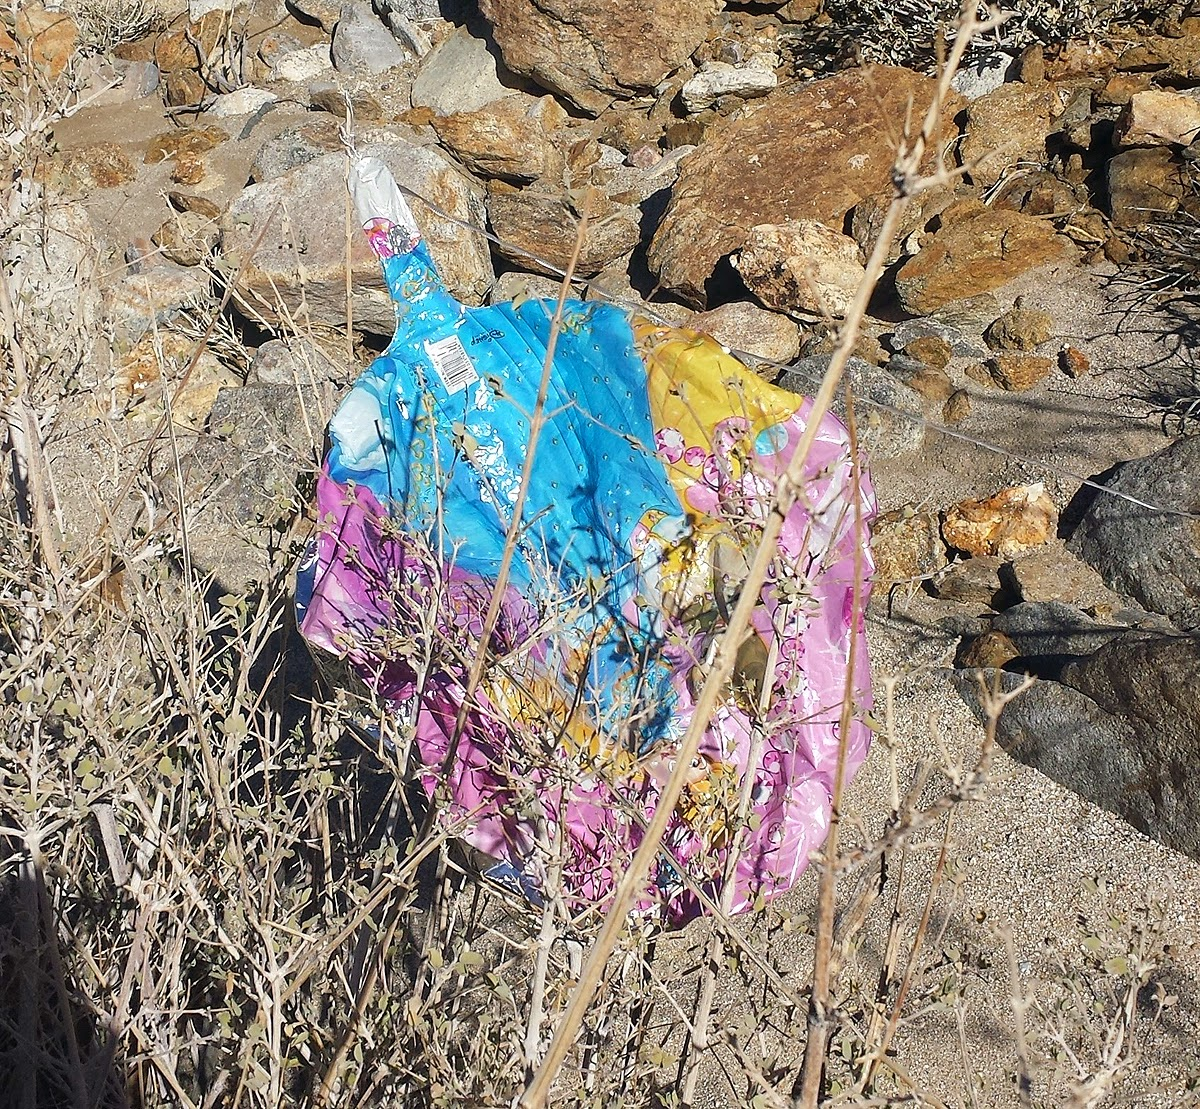 Found one Mylar balloon on the way up. Unfortunately Mylar balloons can take years to biodegrade.